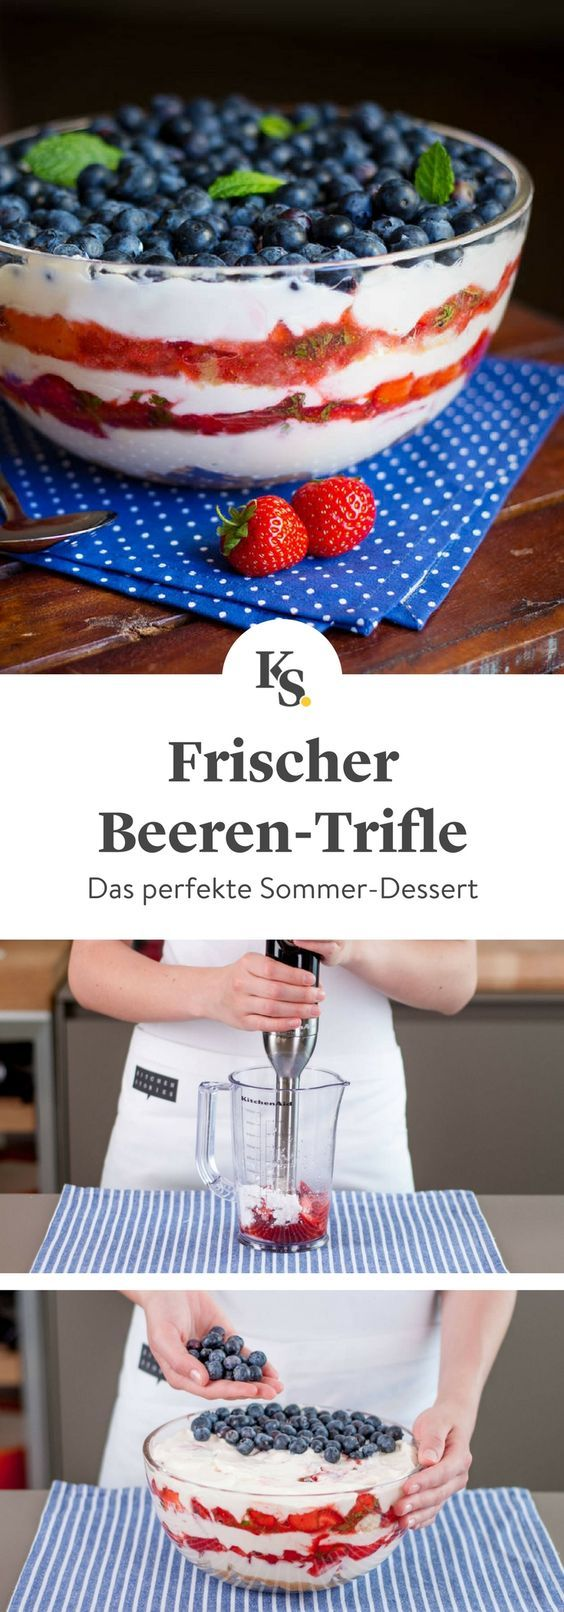 Frischer Beeren-Trifle | Rezept | Kitchen Stories